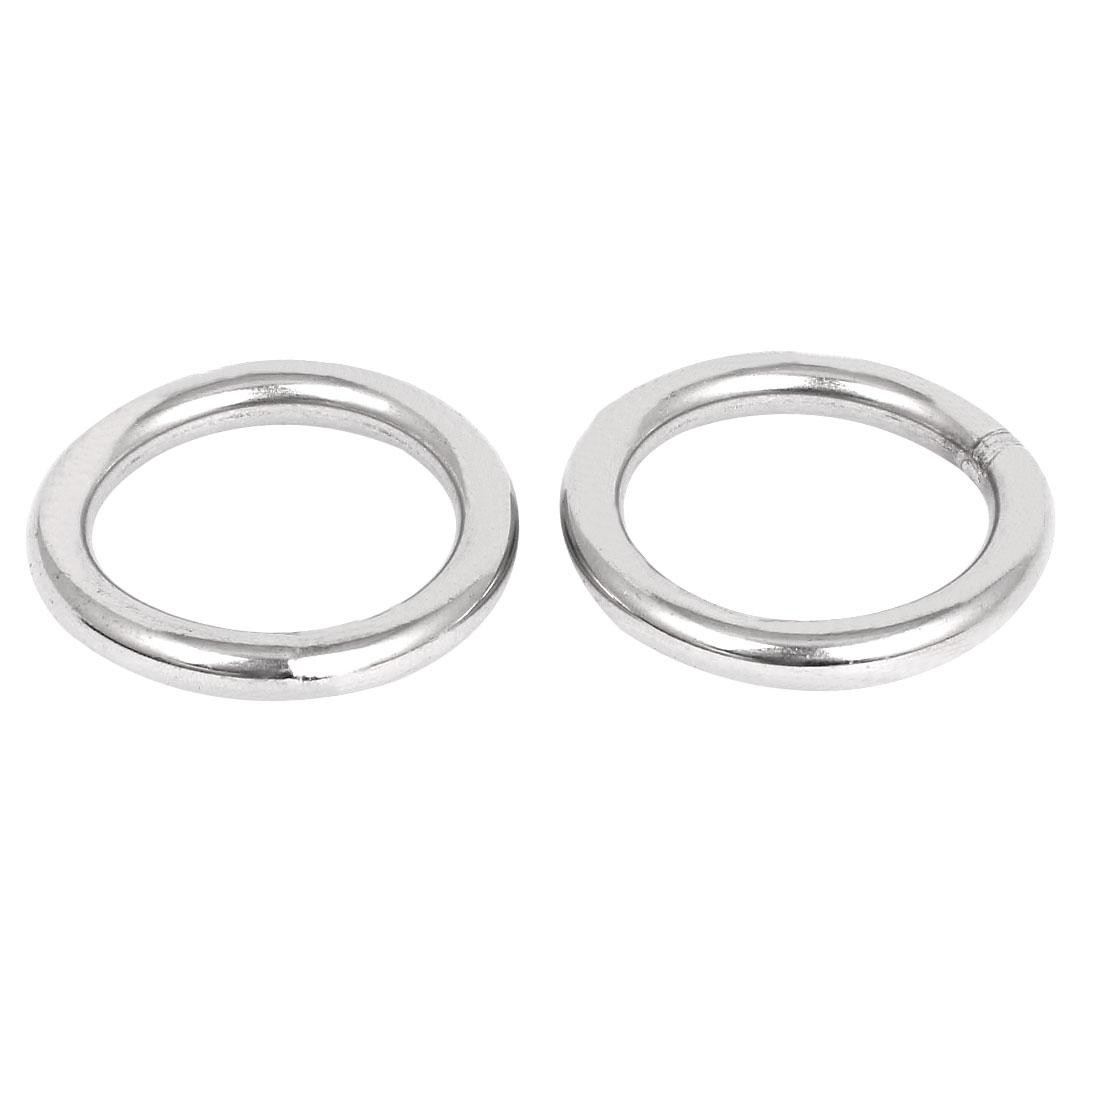 60mm x 8mm 304 Stainless Steel Webbing Strapping Welded O Rings 2 Pcs